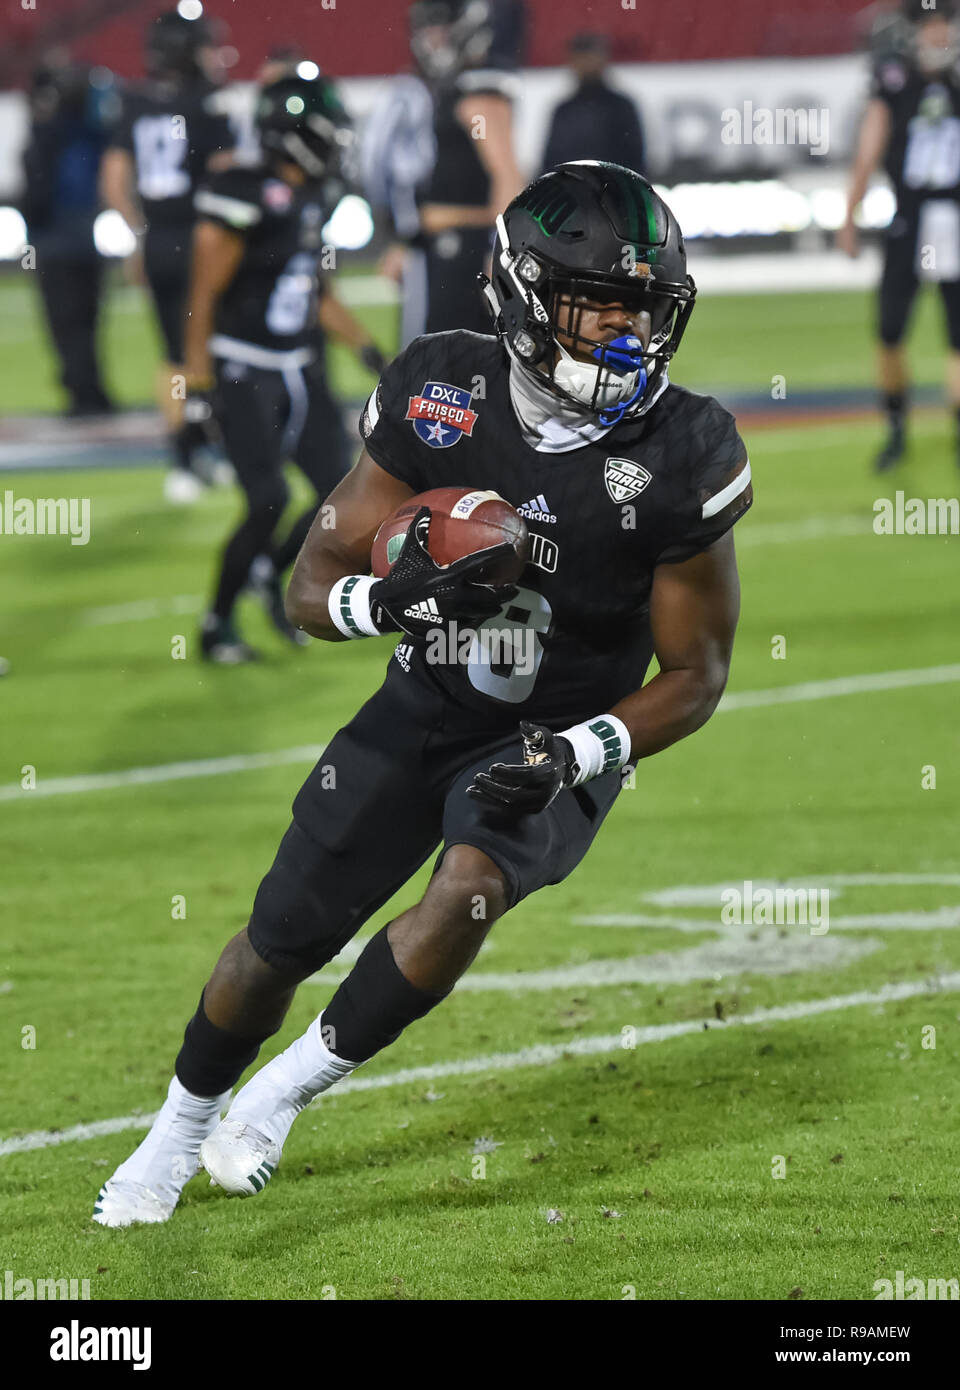 Frisco, TX, USA. 19th Dec, 2018. Ohio University Bobcat receiver Jerome Buckner (8) in action at the NCAA football Frisco Bowl game between the Ohio Bobcats and the San Diego State Aztecs at the Frisco Bowl, in Frisco, TX. (Absolute Complete Photographer & Company Credit: Joe Calomeni/MarinMedia.org/Cal Sport Media) Credit: csm/Alamy Live News - Stock Image